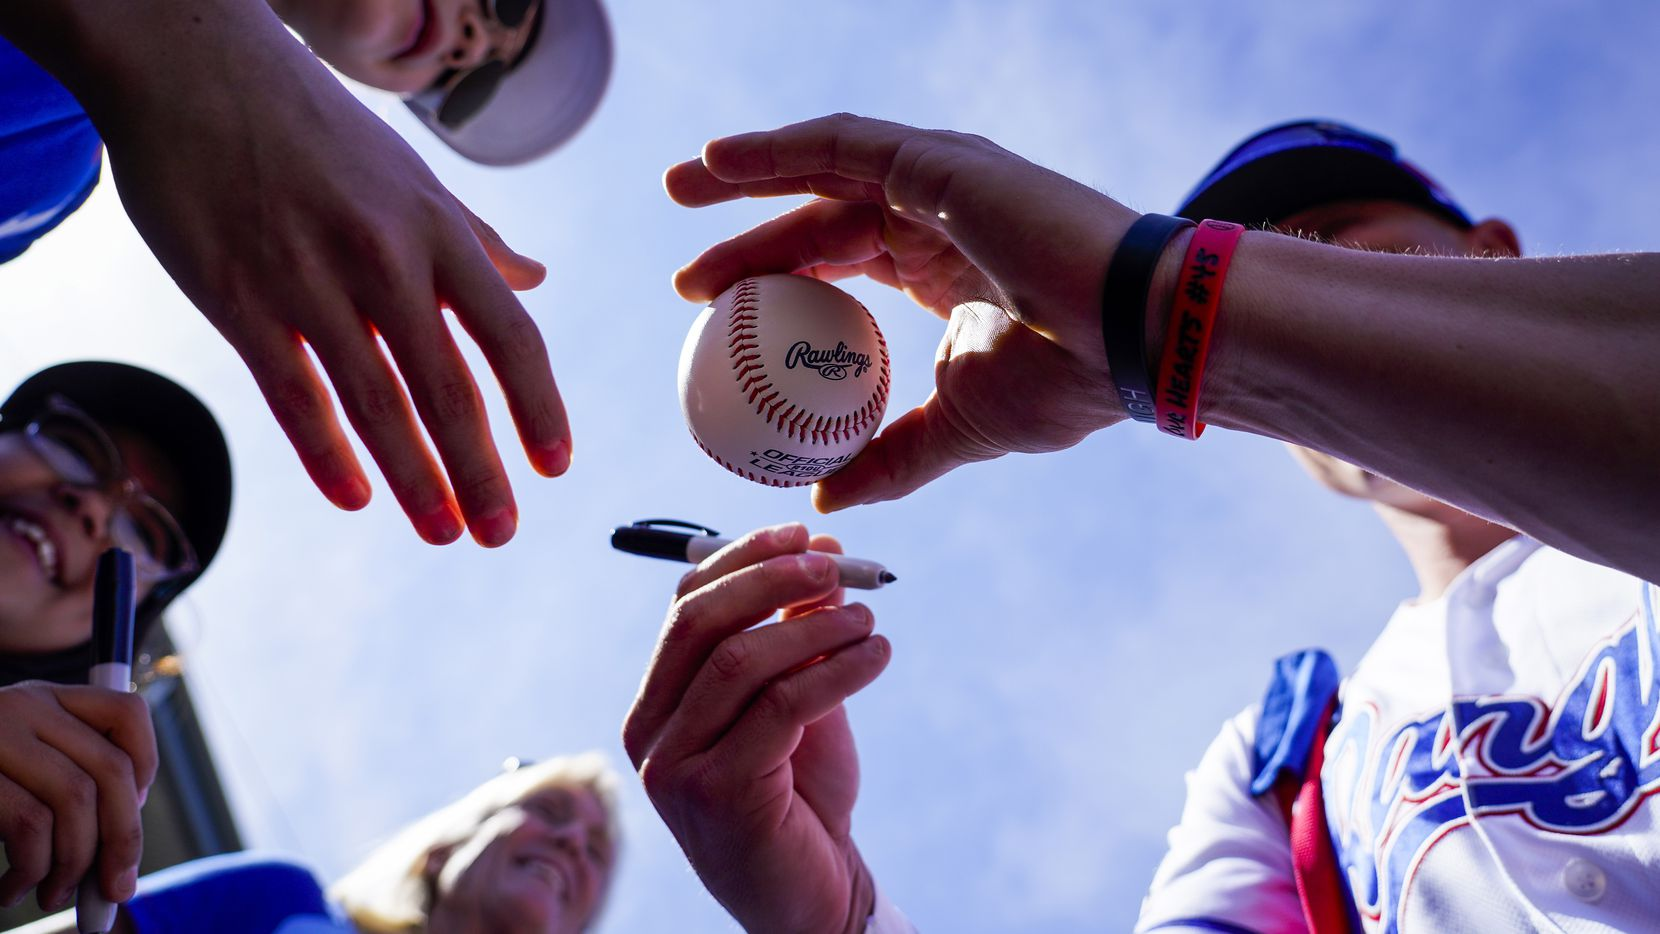 Texas Rangers outfielder Scott Heineman signs autographs before of a spring training game against the Chicago Cubs at Surprise Stadium on Thursday, Feb. 27, 2020, in Surprise, Ariz.